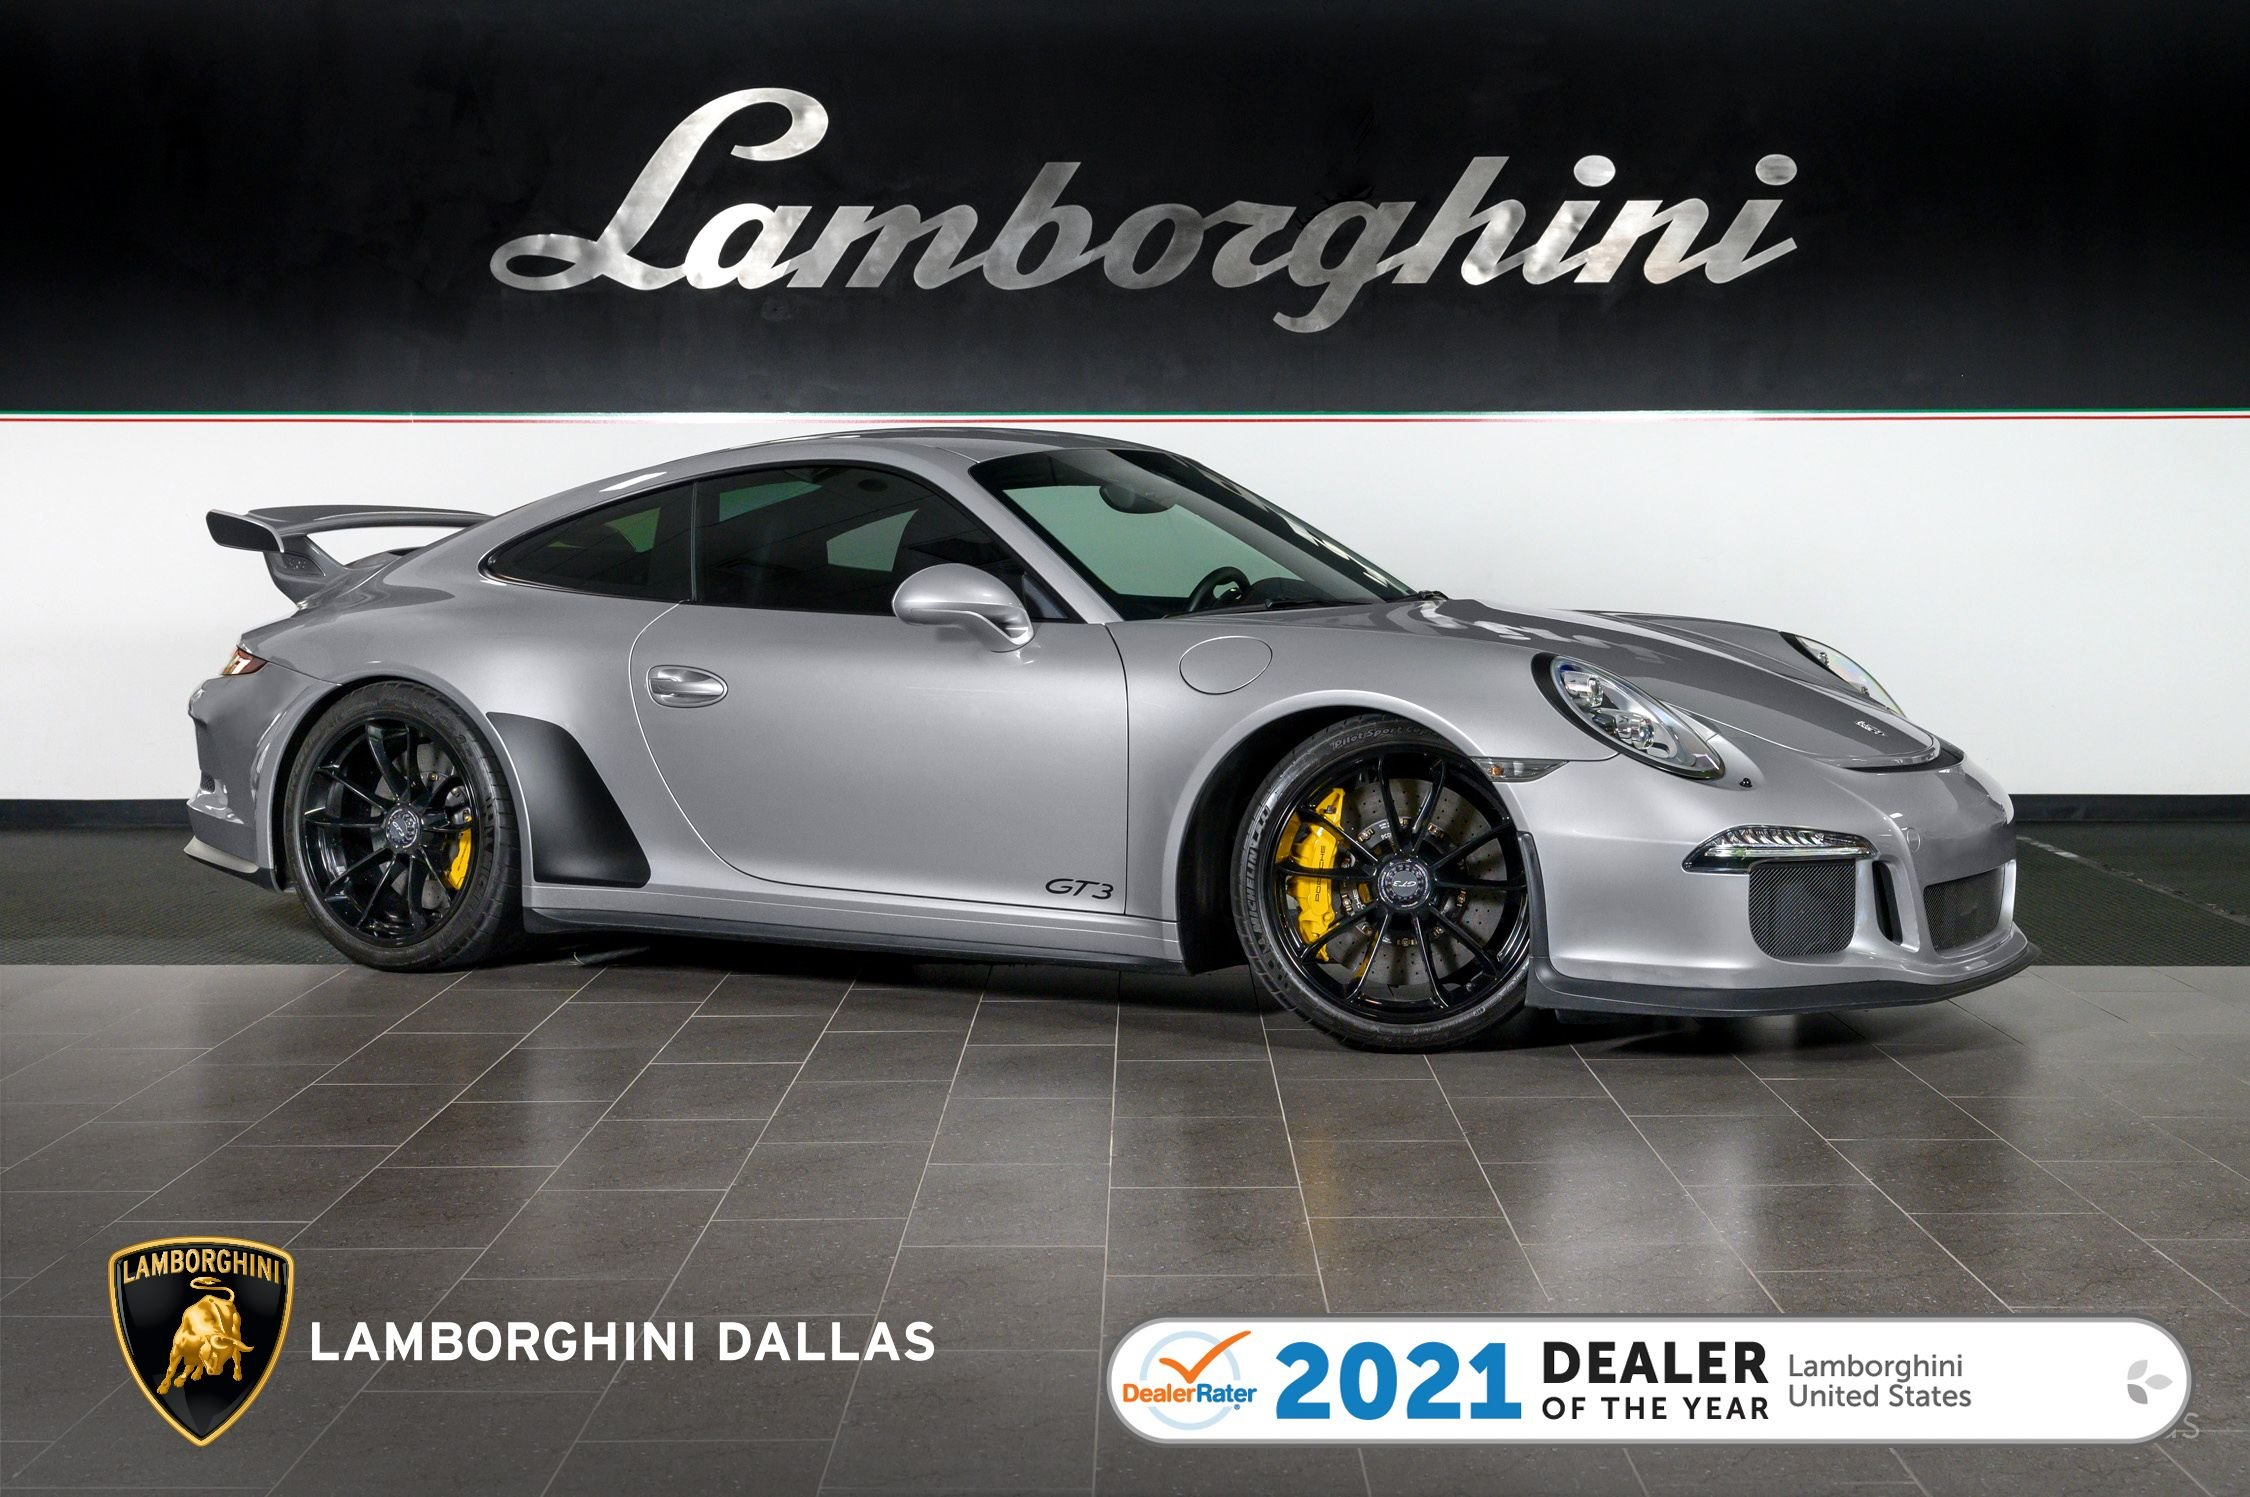 used 2015 Porsche 911 GT3 car, priced at $134,999